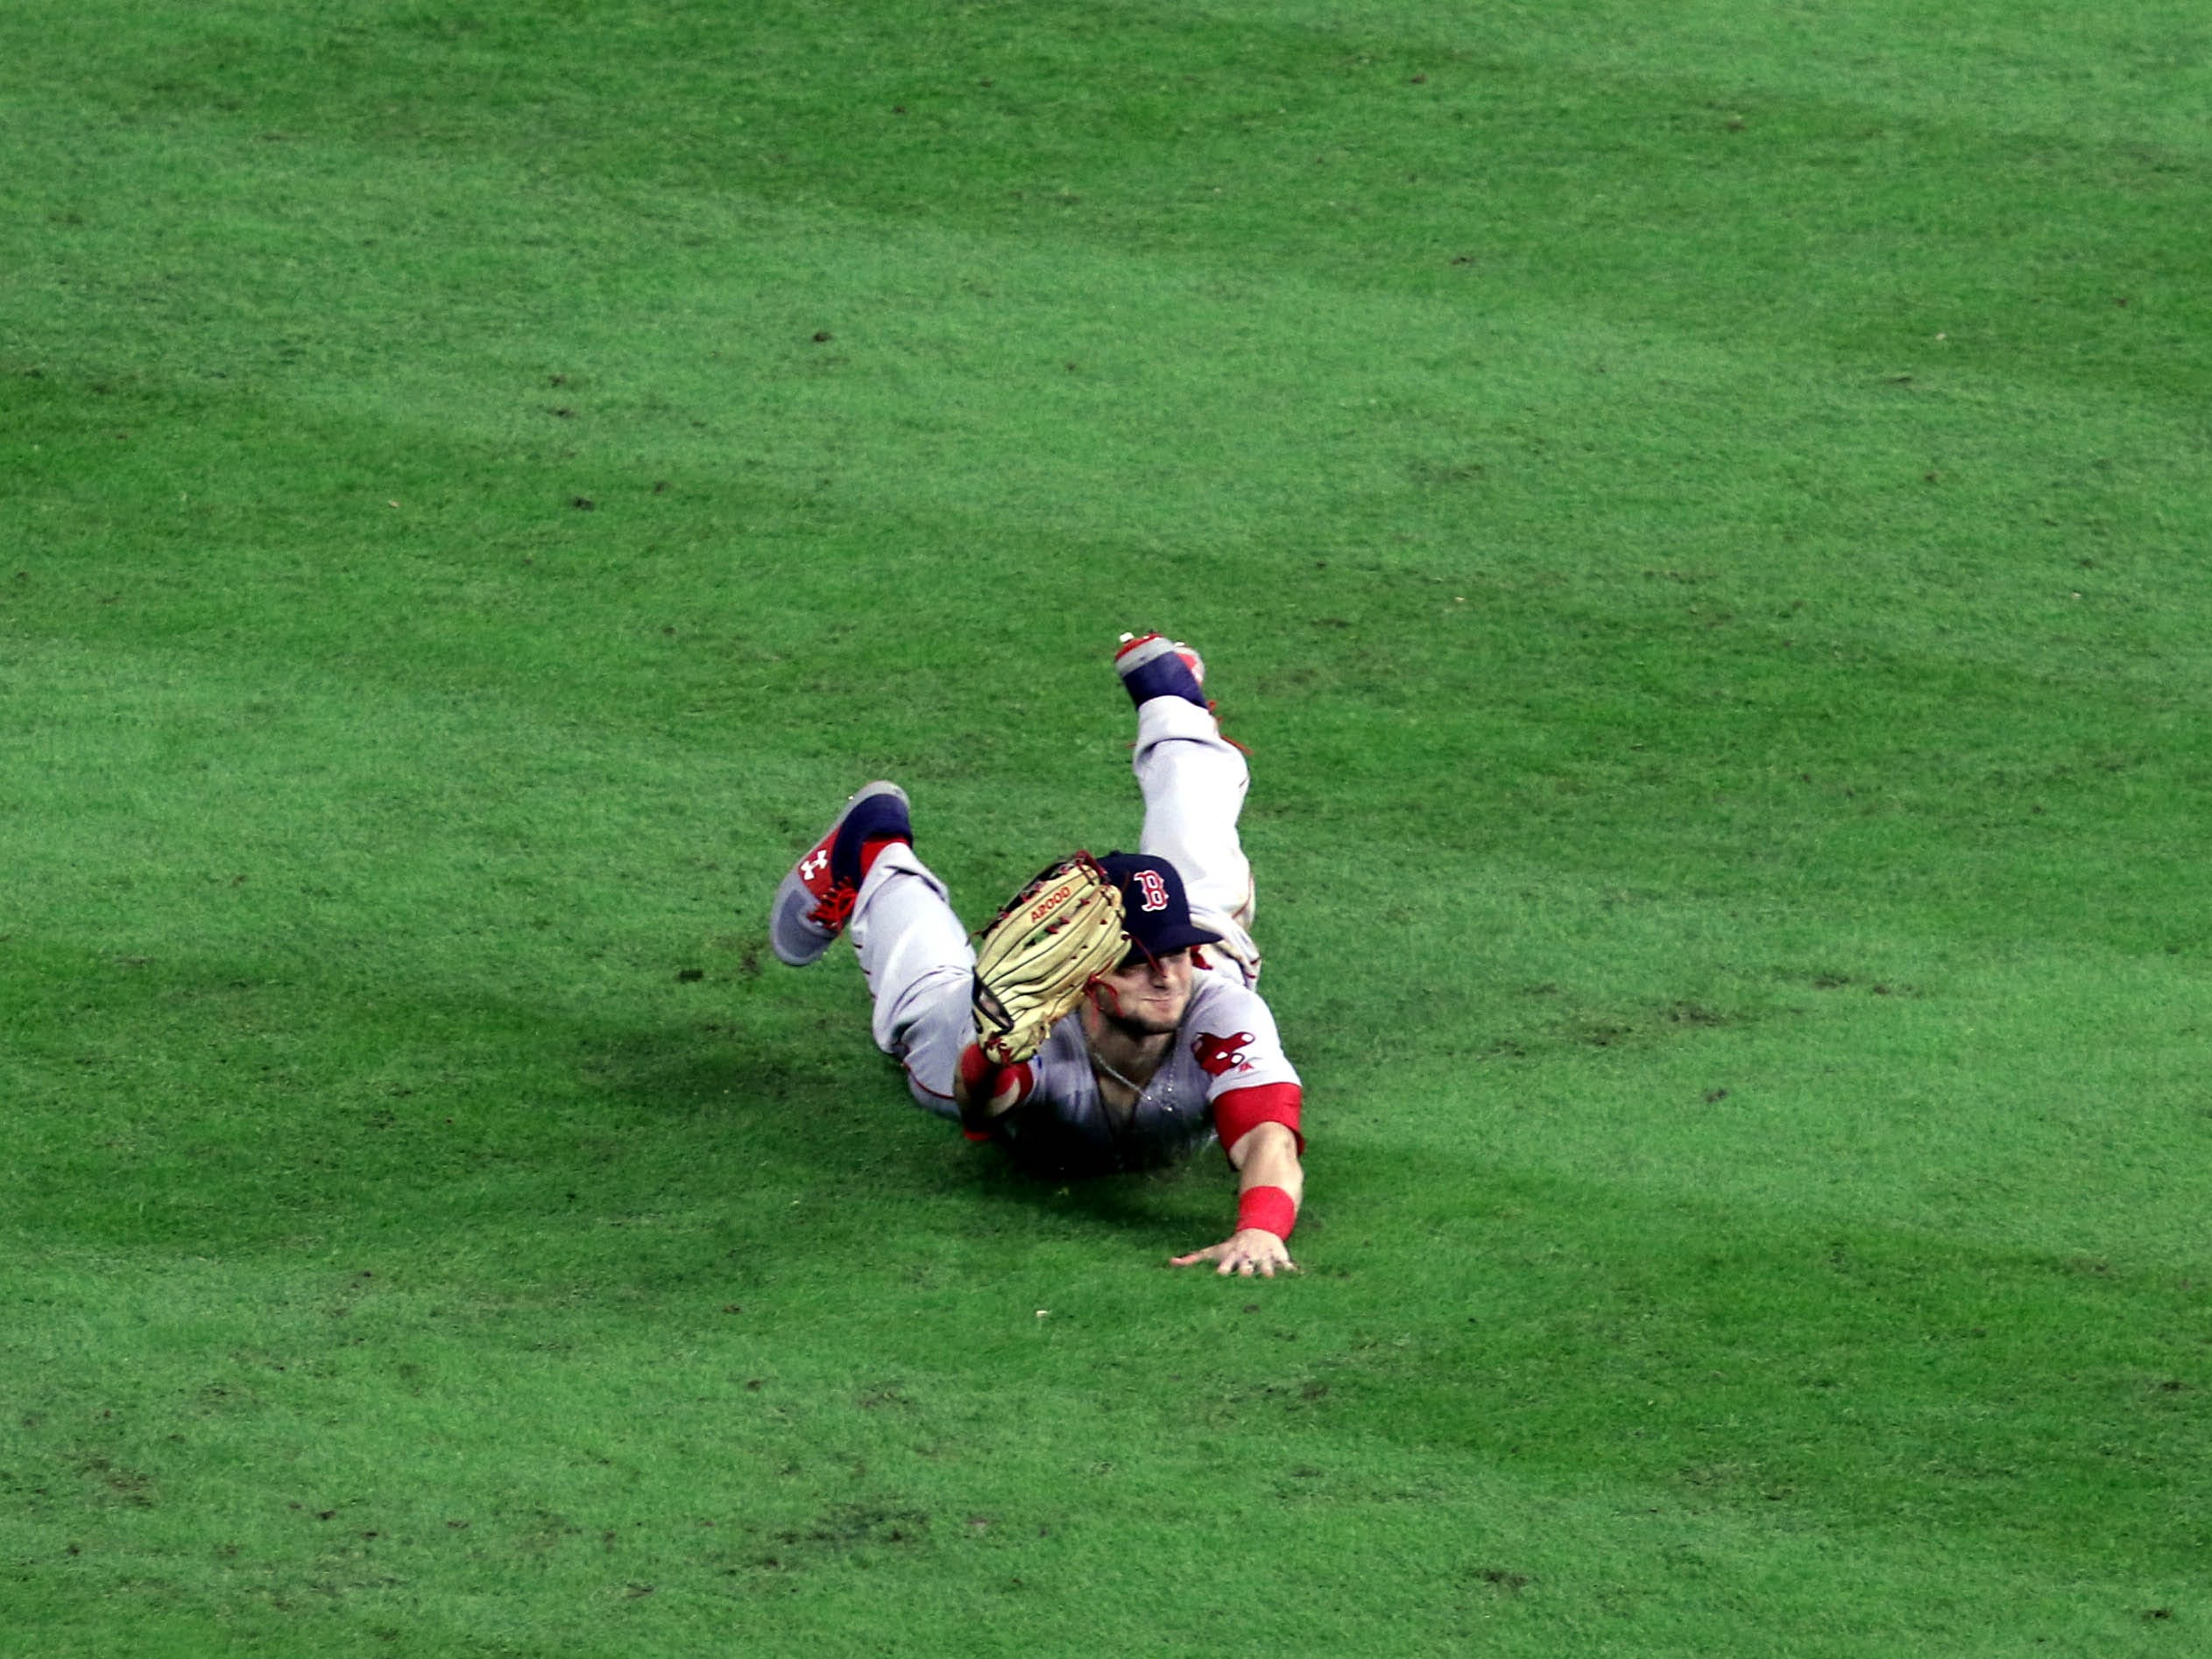 ALCS Game 4: Red Sox left fielder Andrew Benintendi makes a game-ending diving catch in the ninth inning to secure the win.